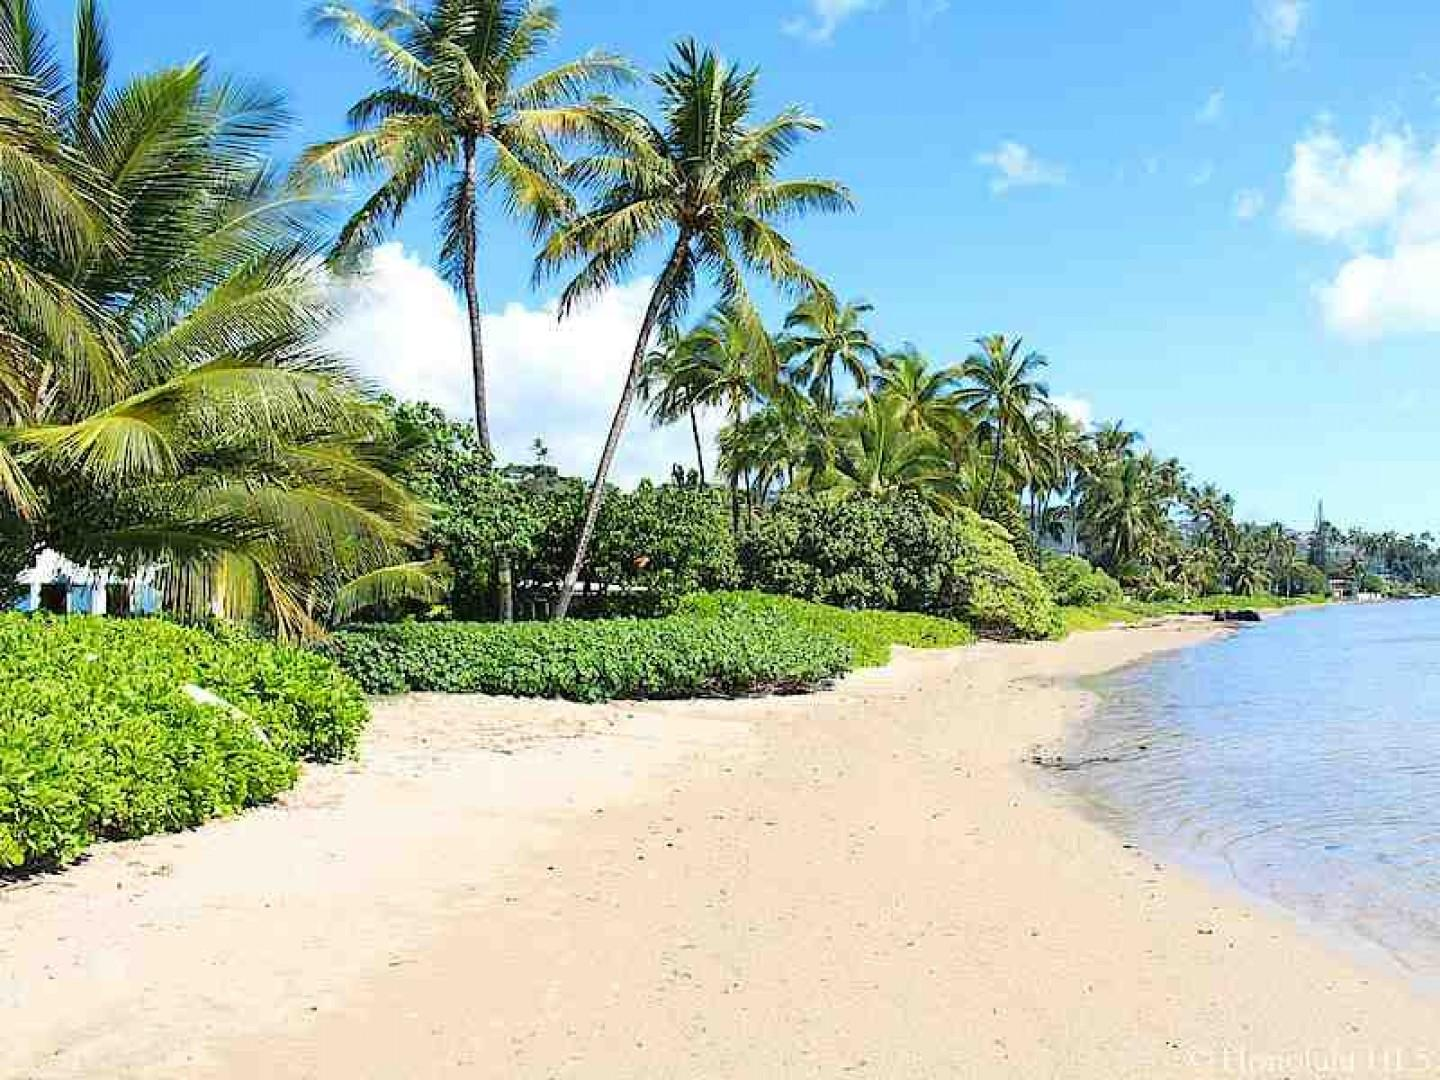 Just a short drive to beautiful sandy beaches!